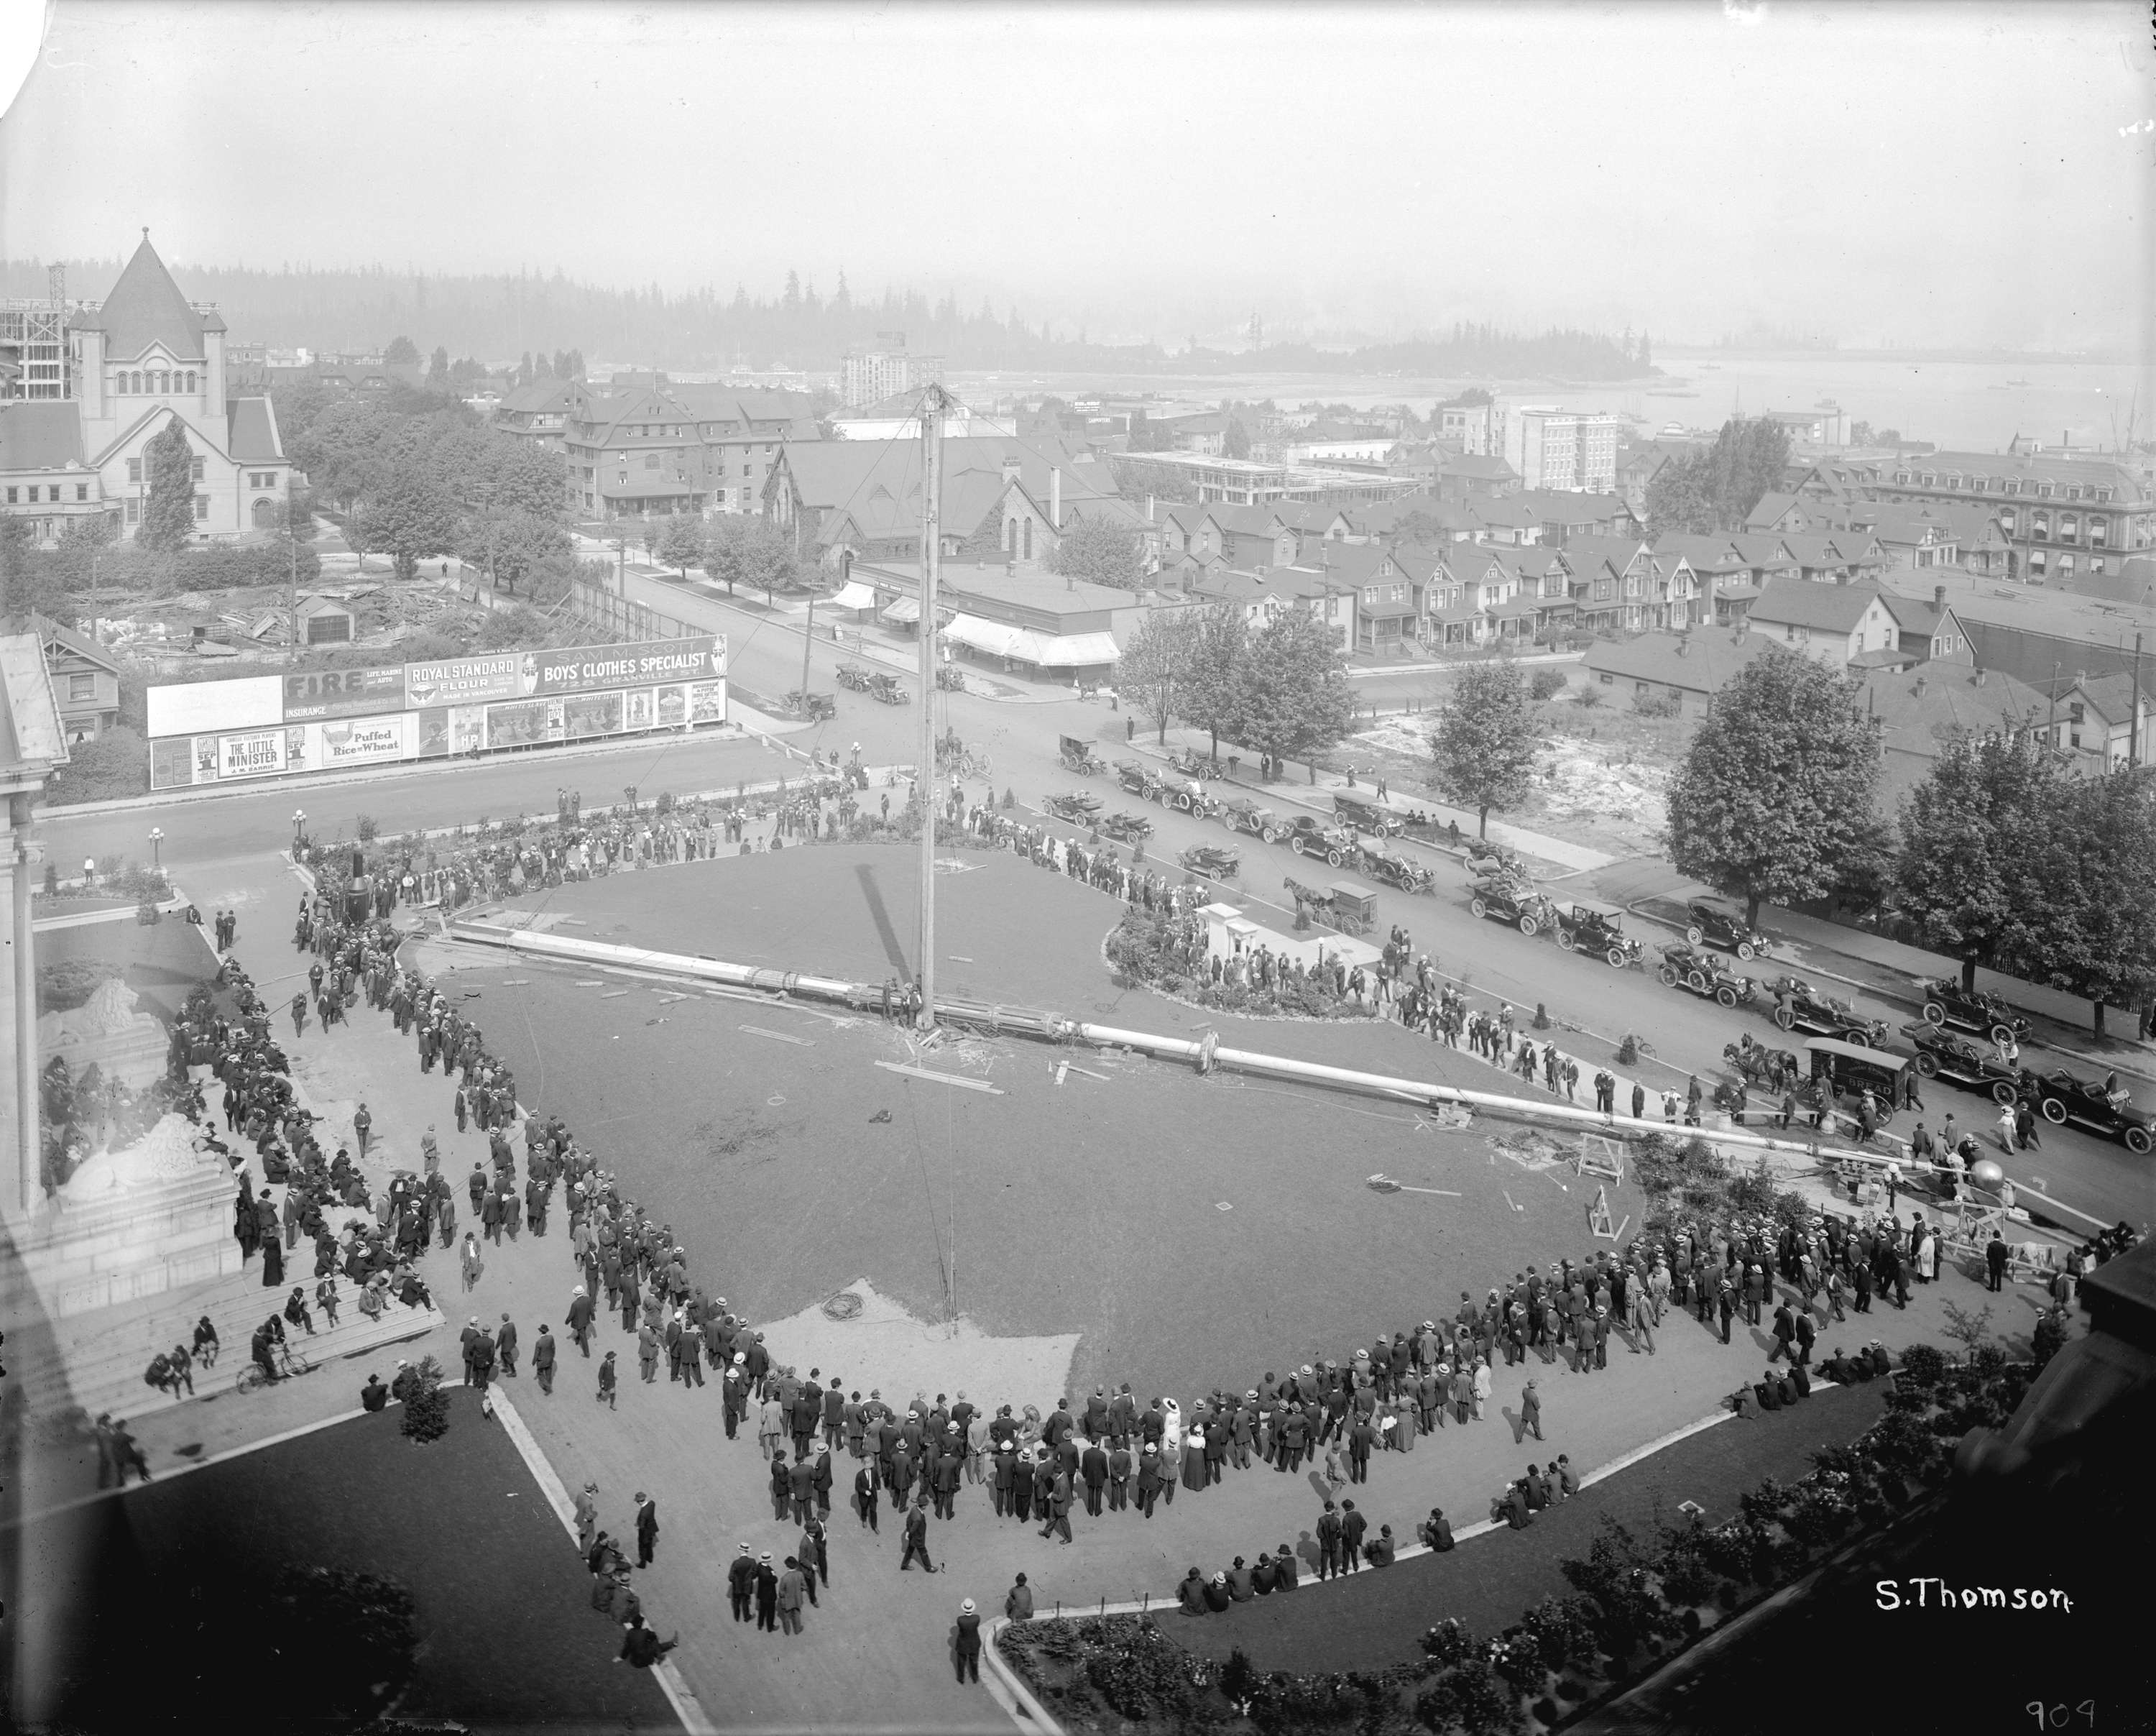 A flagpole being raised in BC courthouse square in Vancouver in 1913 (Vancouver Archives)